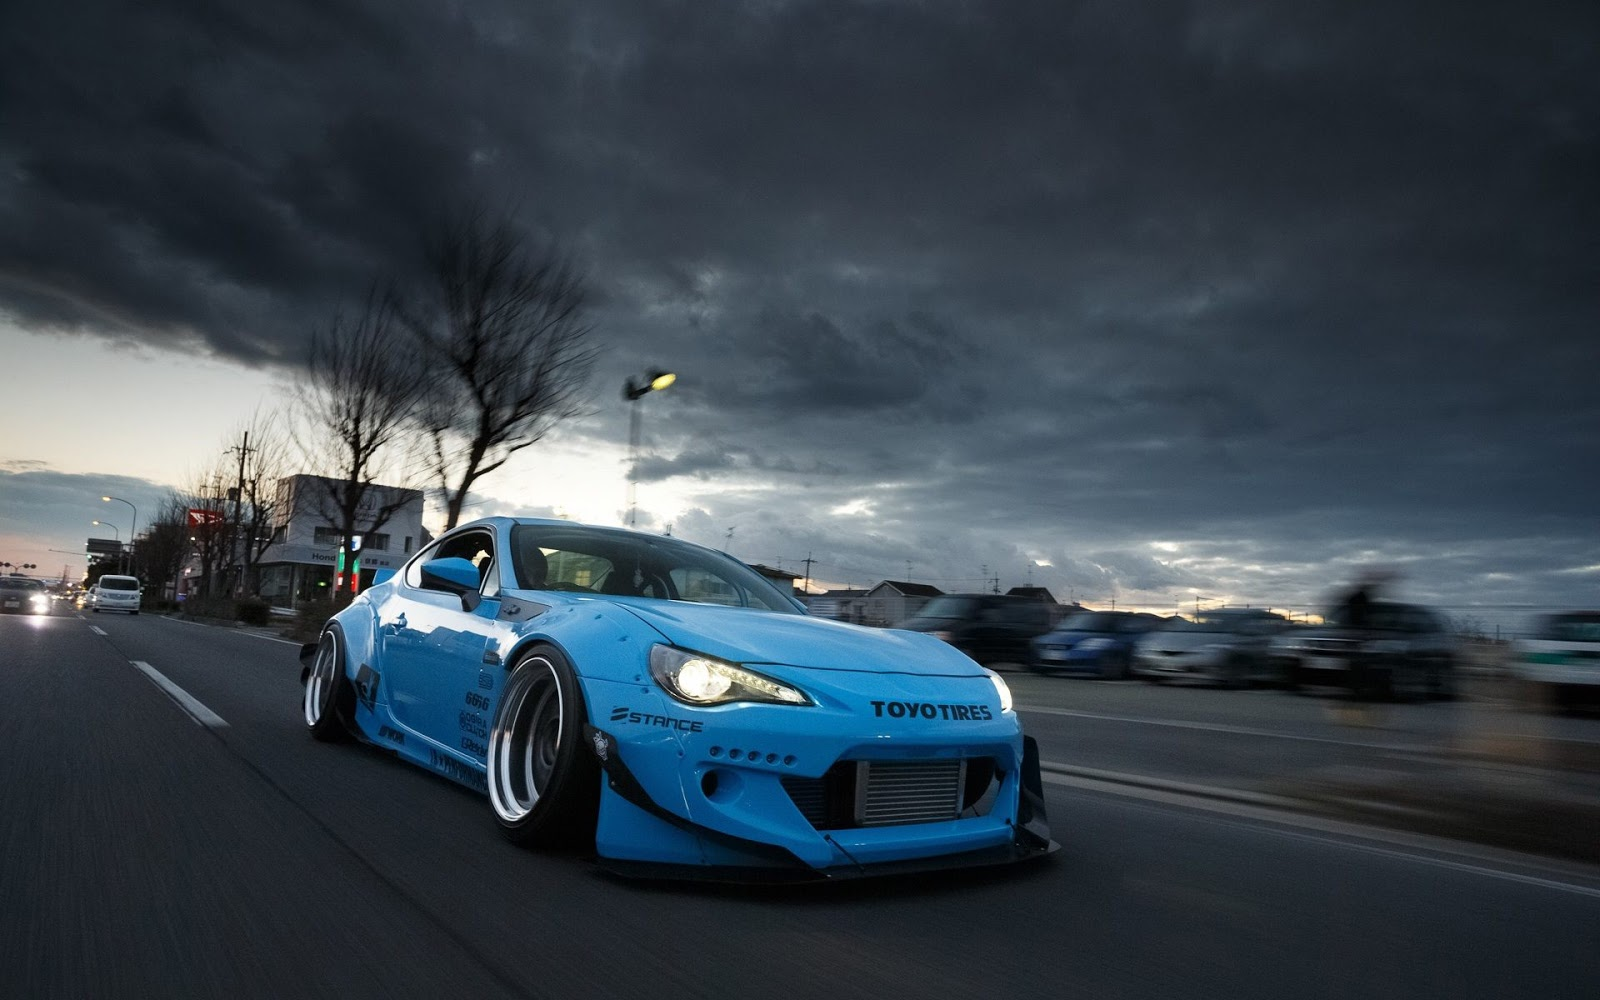 Subaru Of South Orlando >> 20 Toyota GT86 Wallpapers | Car Enthusiast Wallpapers